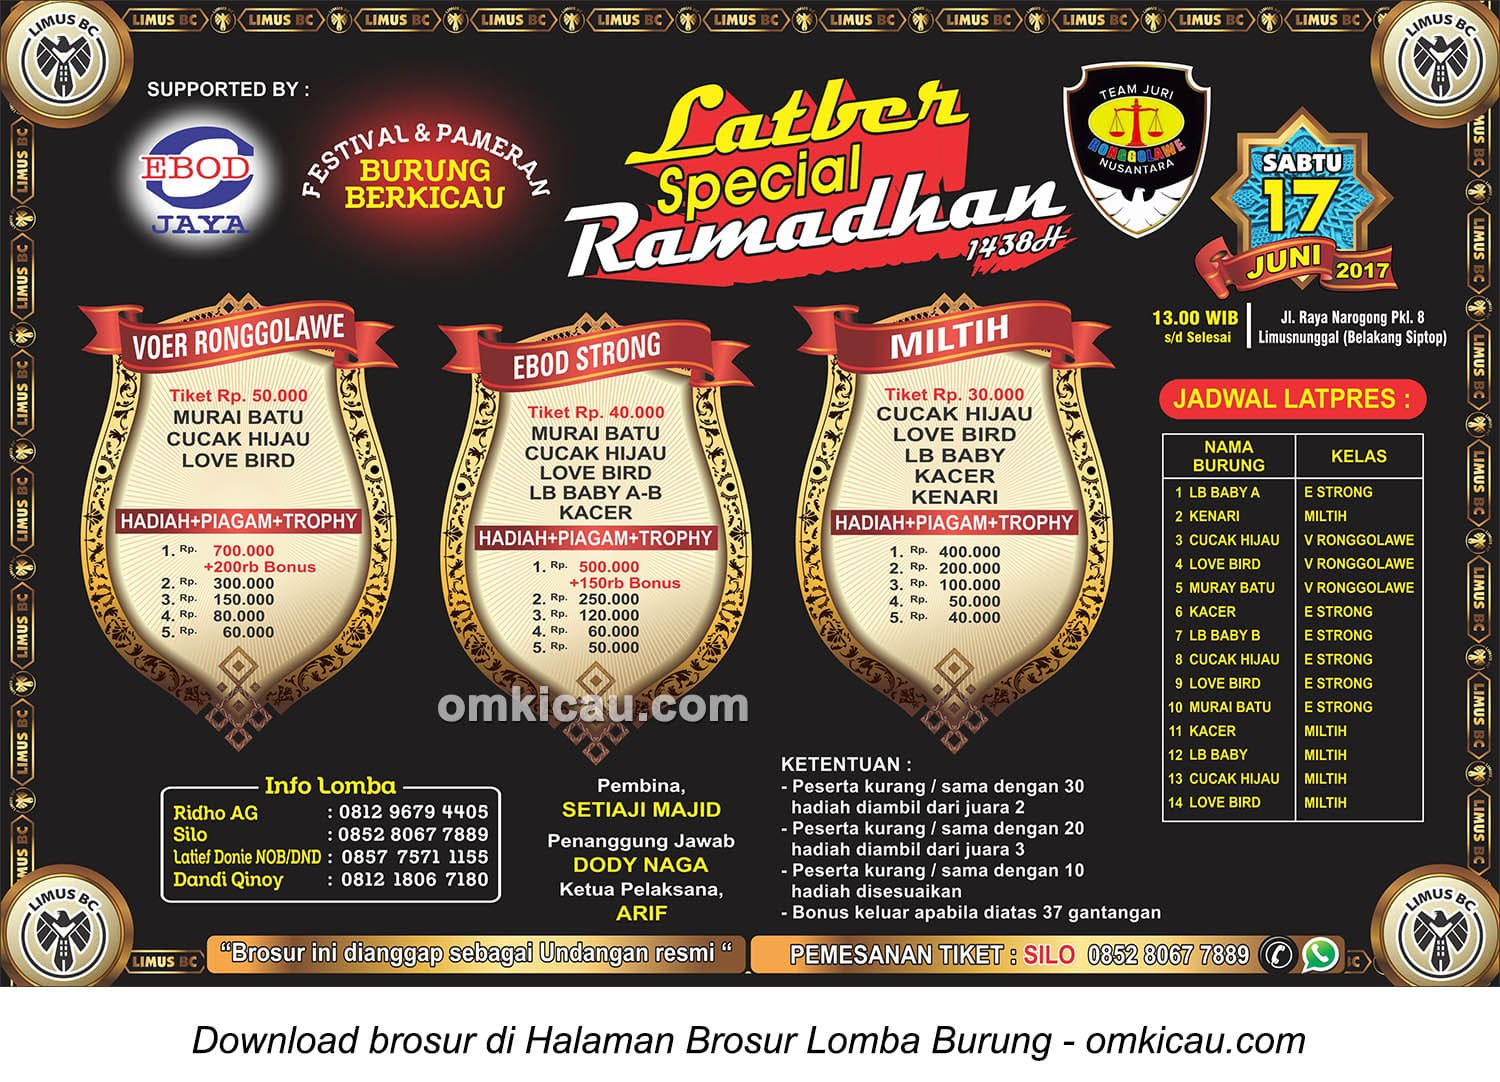 Latber Special Ramadhan Limus BC